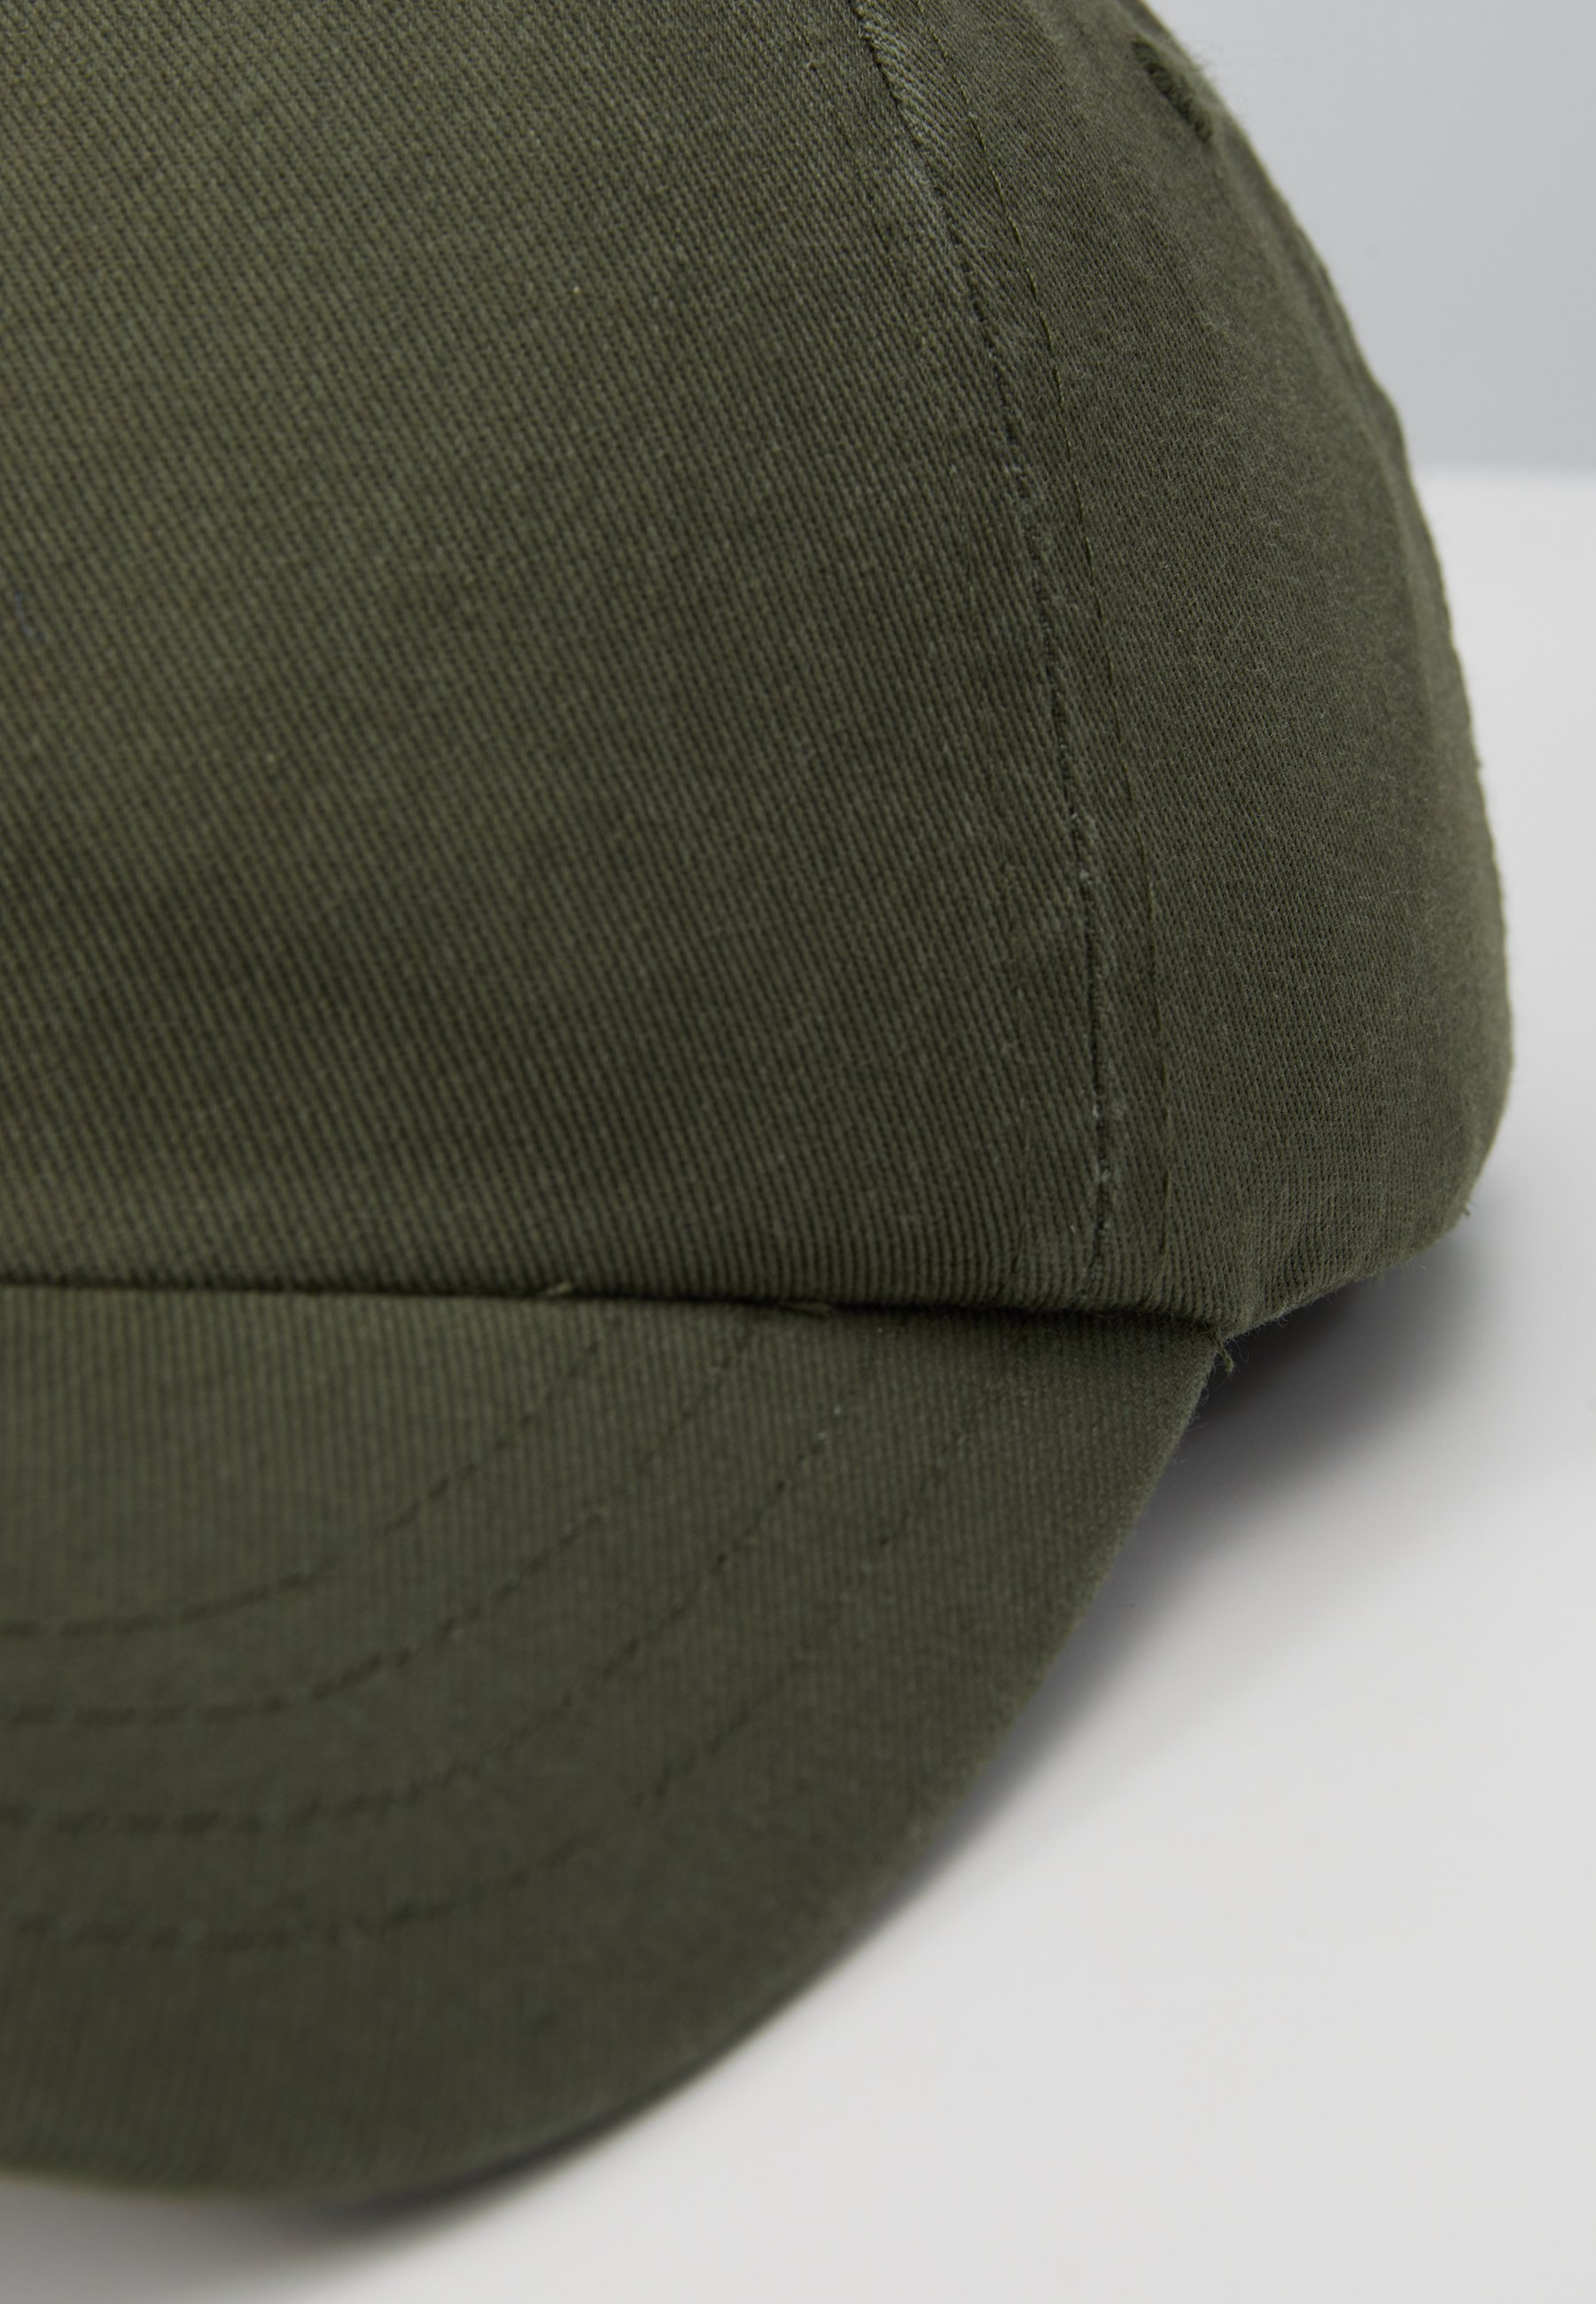 Dickies Hardwick 6 Panel Logo Cap - Army Green/oliv